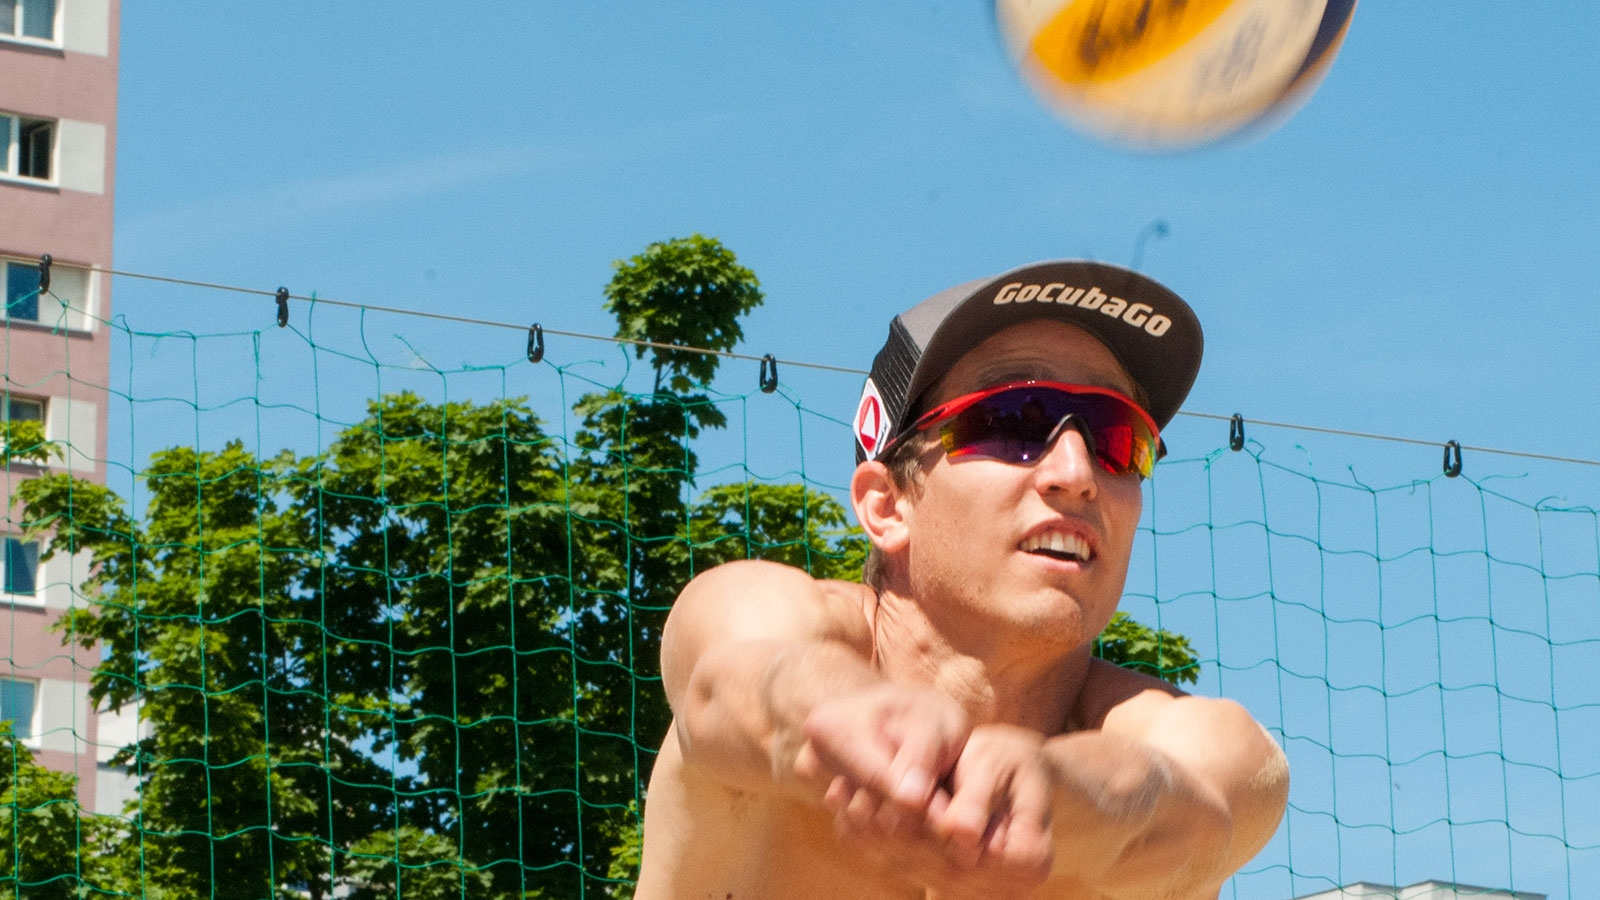 Sponsoring Go Cuba Go - Beachvolleyball-Team Winter-Hörl | 2019 (Julian Hörl) © Team Winter Hörl